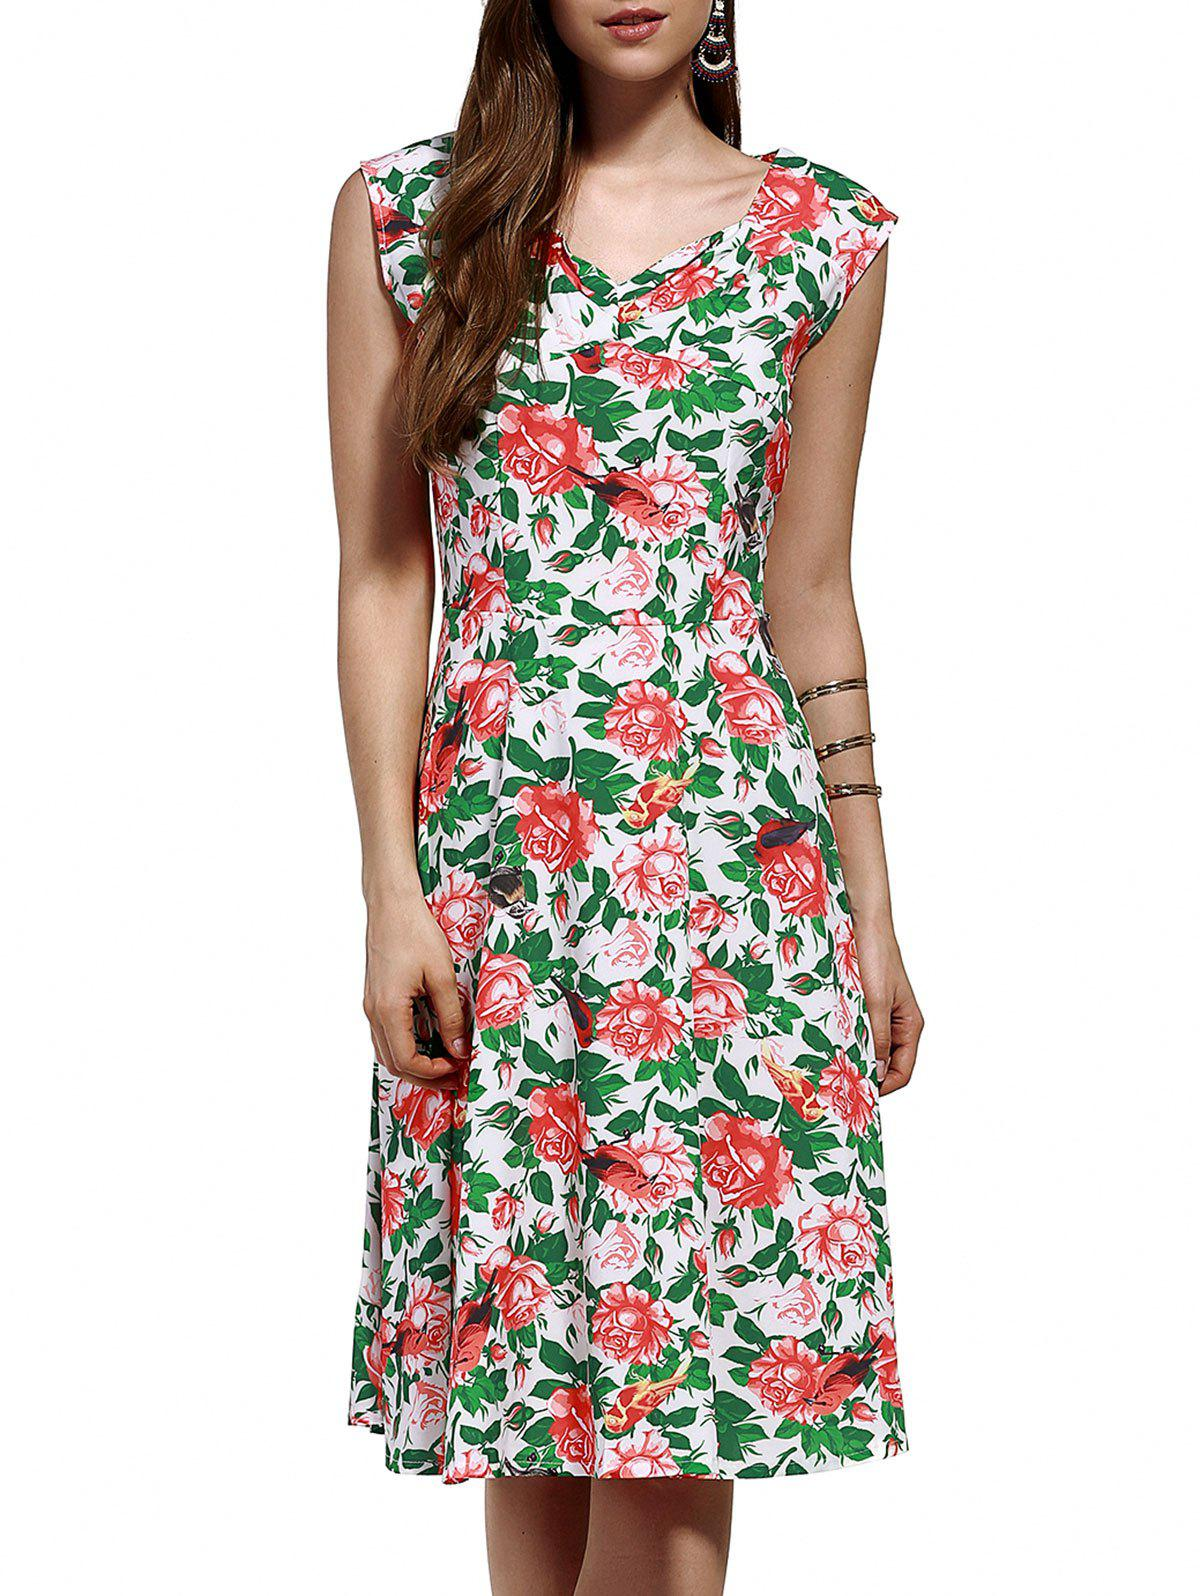 Retro V Neck Full Print Knee Length Dress - COLORMIX XL